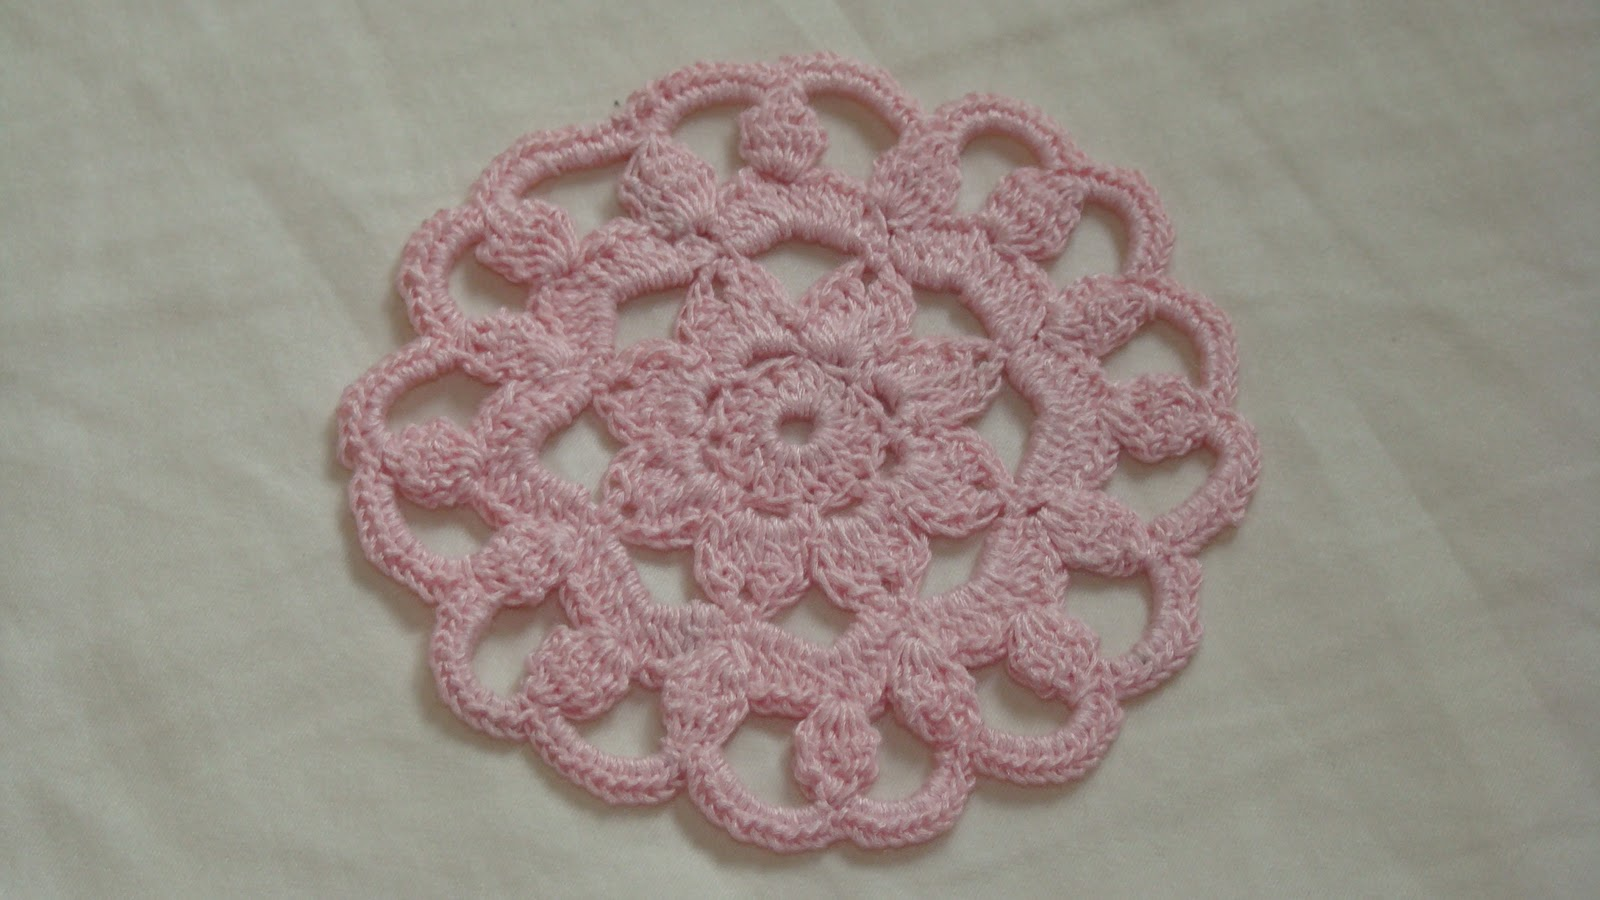 Free Crochet Patterns For Mini Doilies : Crafts By Starlight: Crochet - Mini Doily